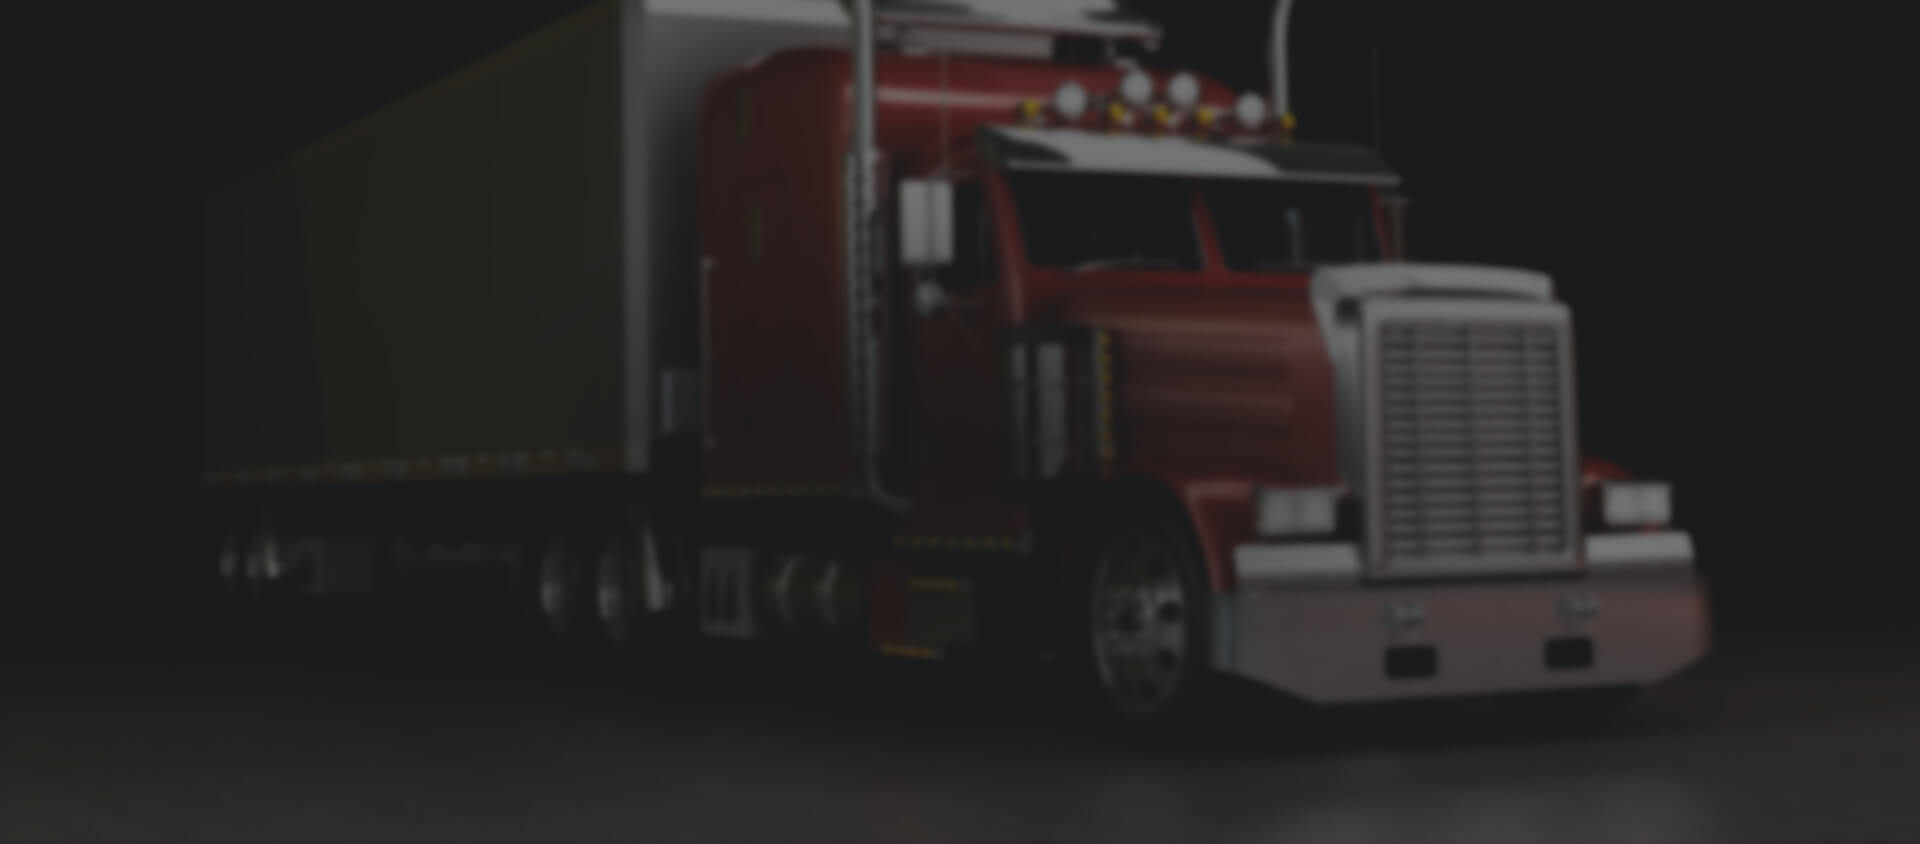 Truck Accident Attorneys | Help for 18-Wheeler Crash Victims